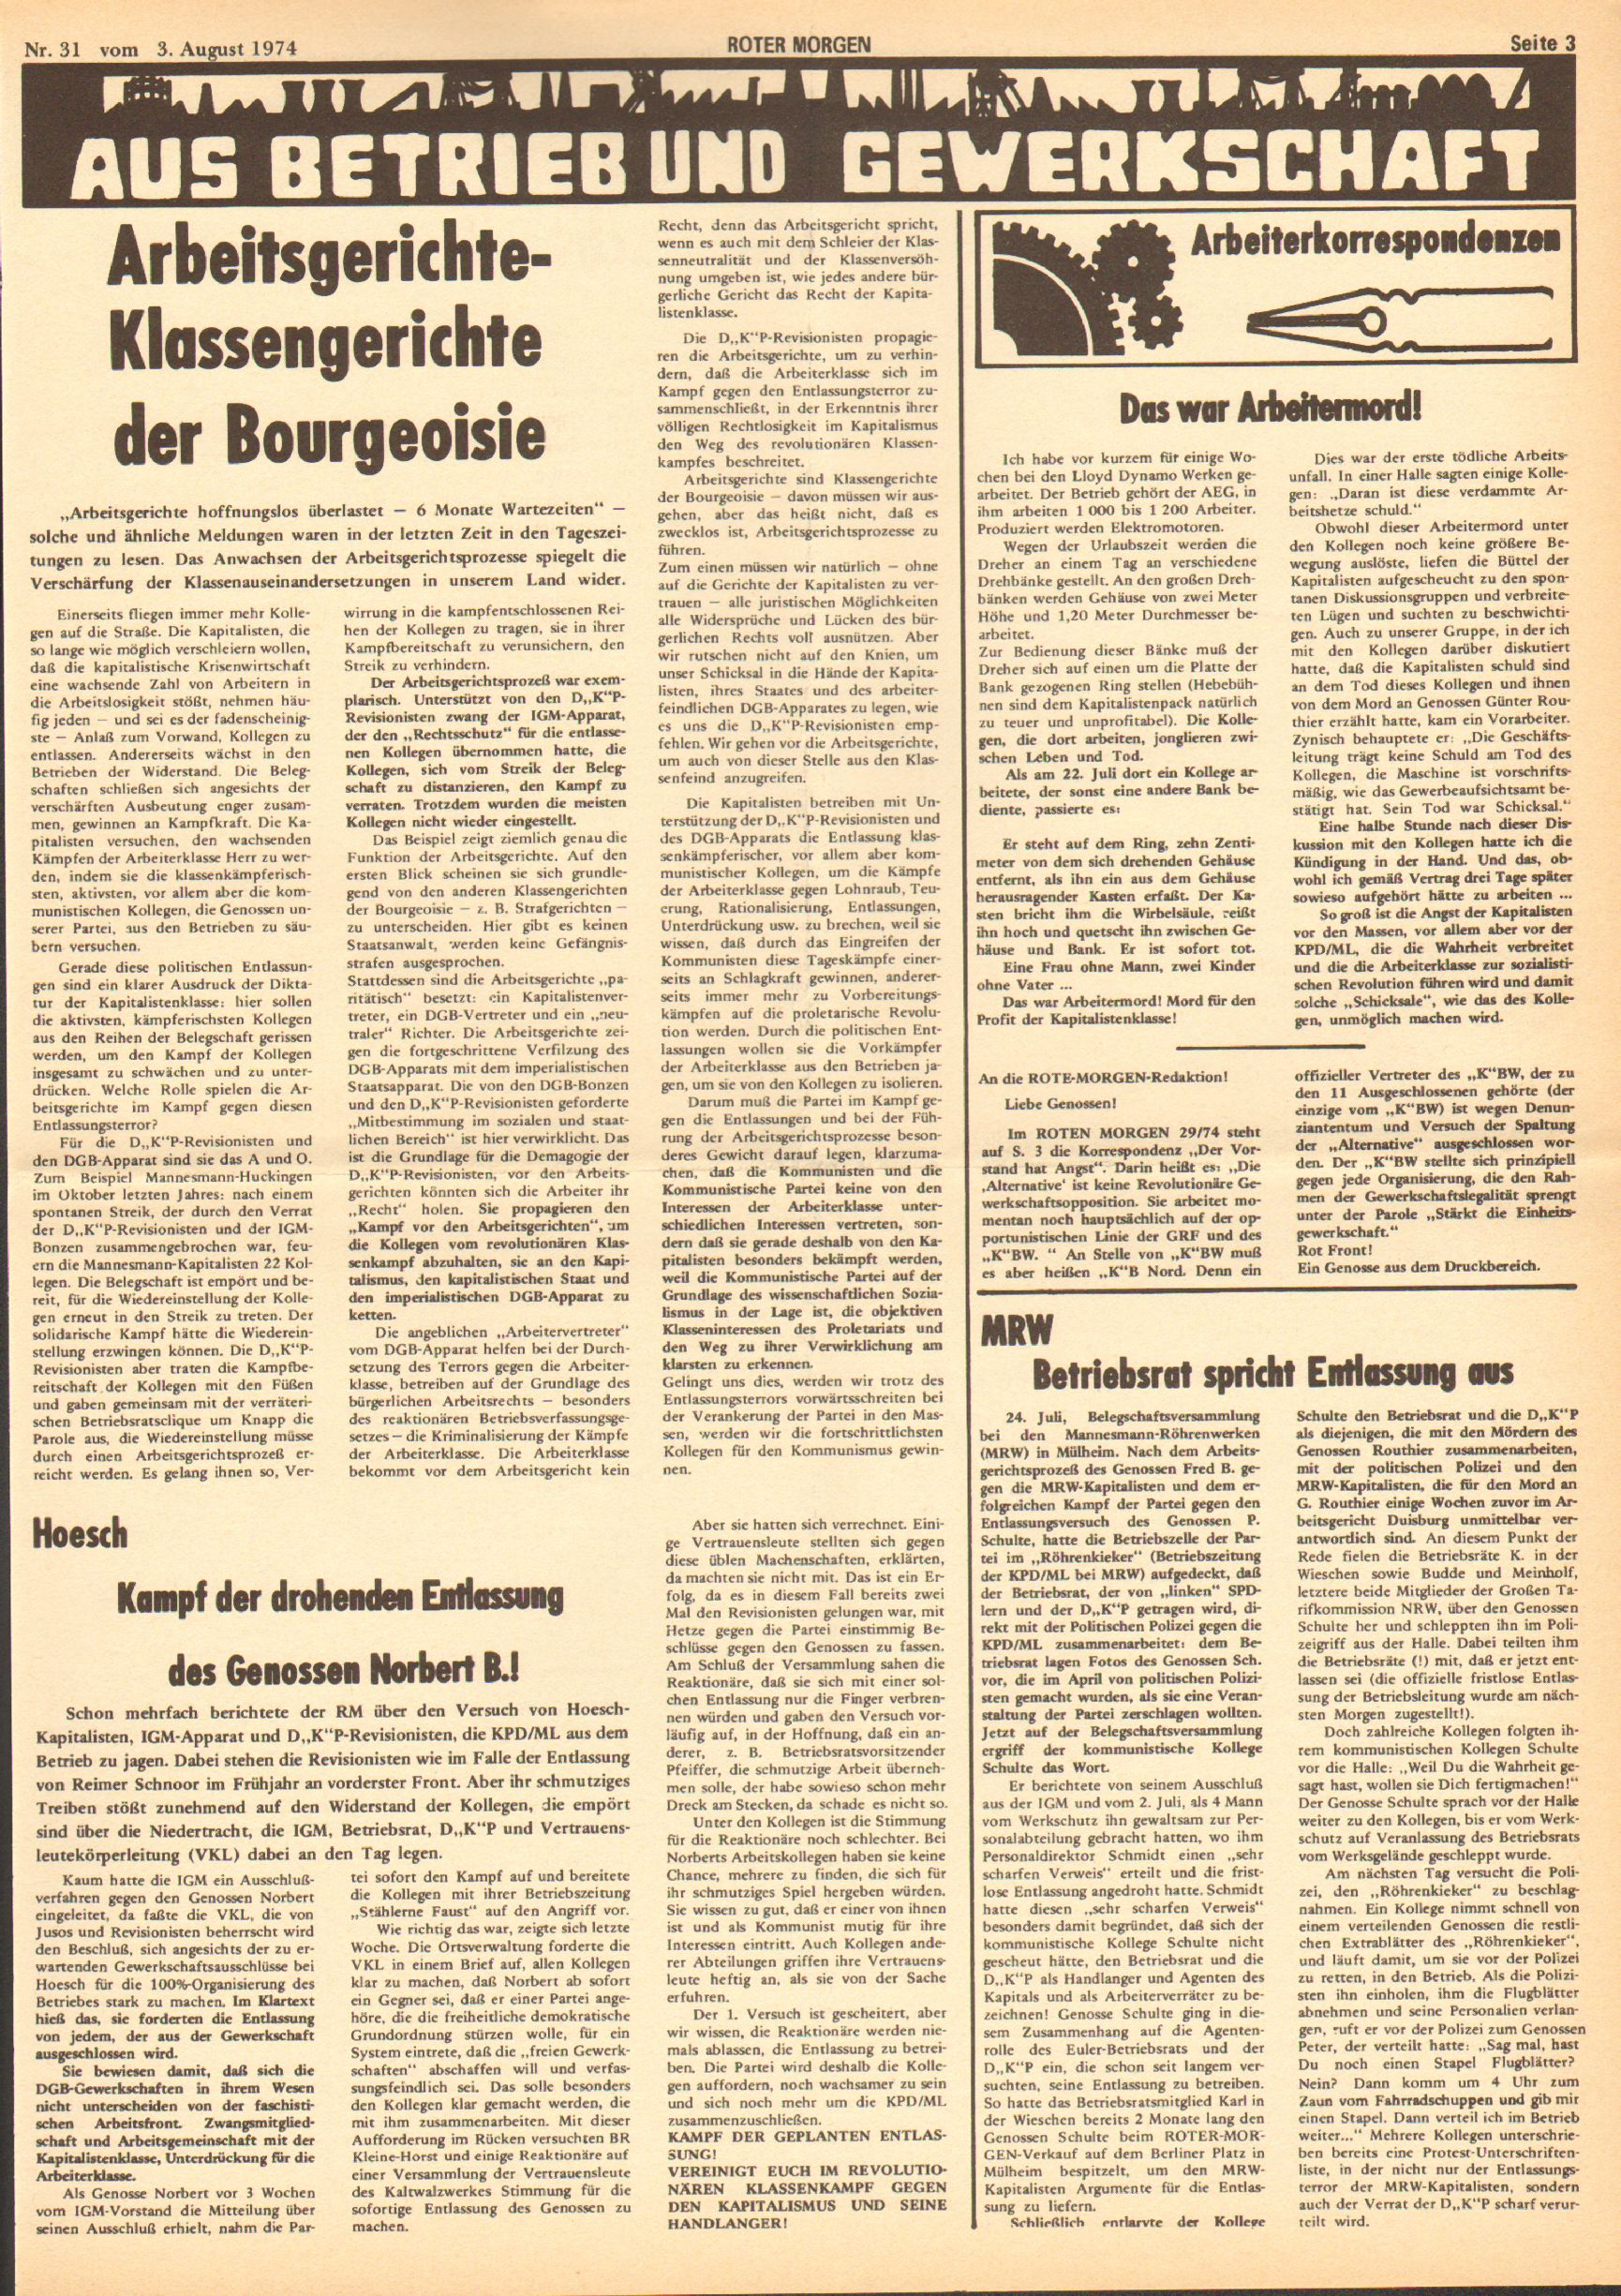 Roter Morgen, 8. Jg., 3. August 1974, Nr. 31, Seite 3